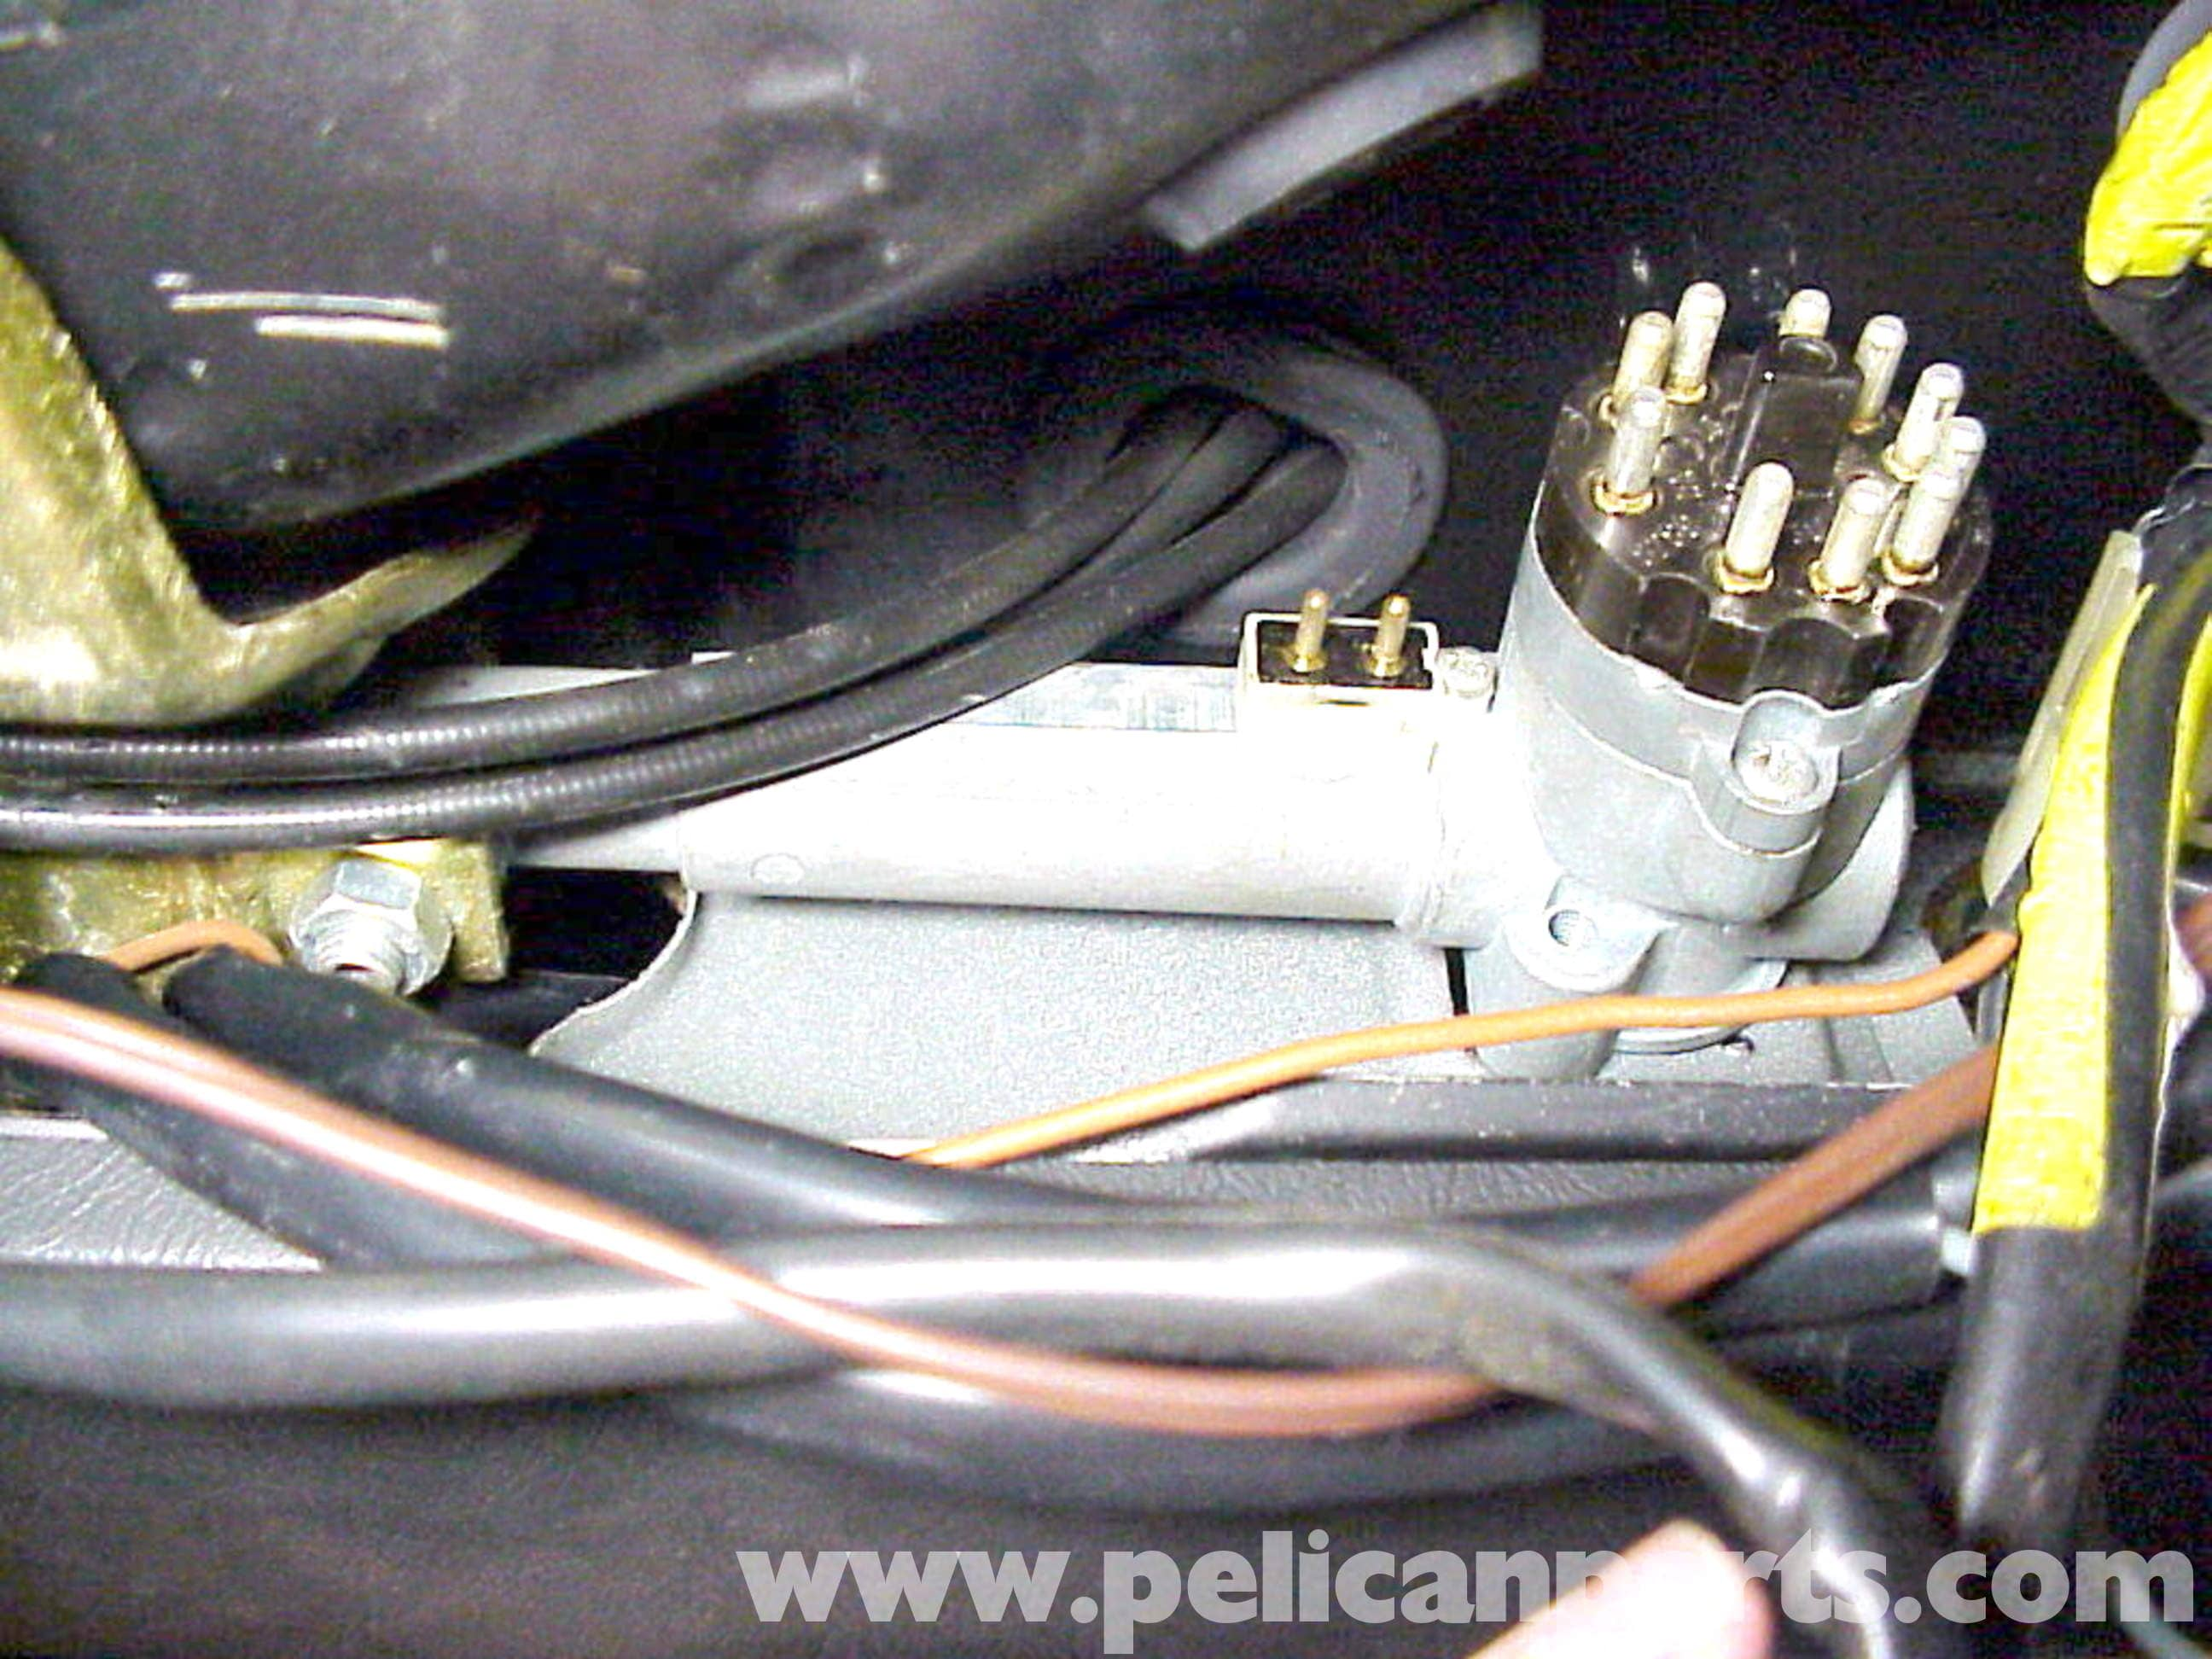 Pic2 porsche 911 ignition switch replacement 911 (1965 89) 930 1985 porsche 911 wiring diagram at panicattacktreatment.co